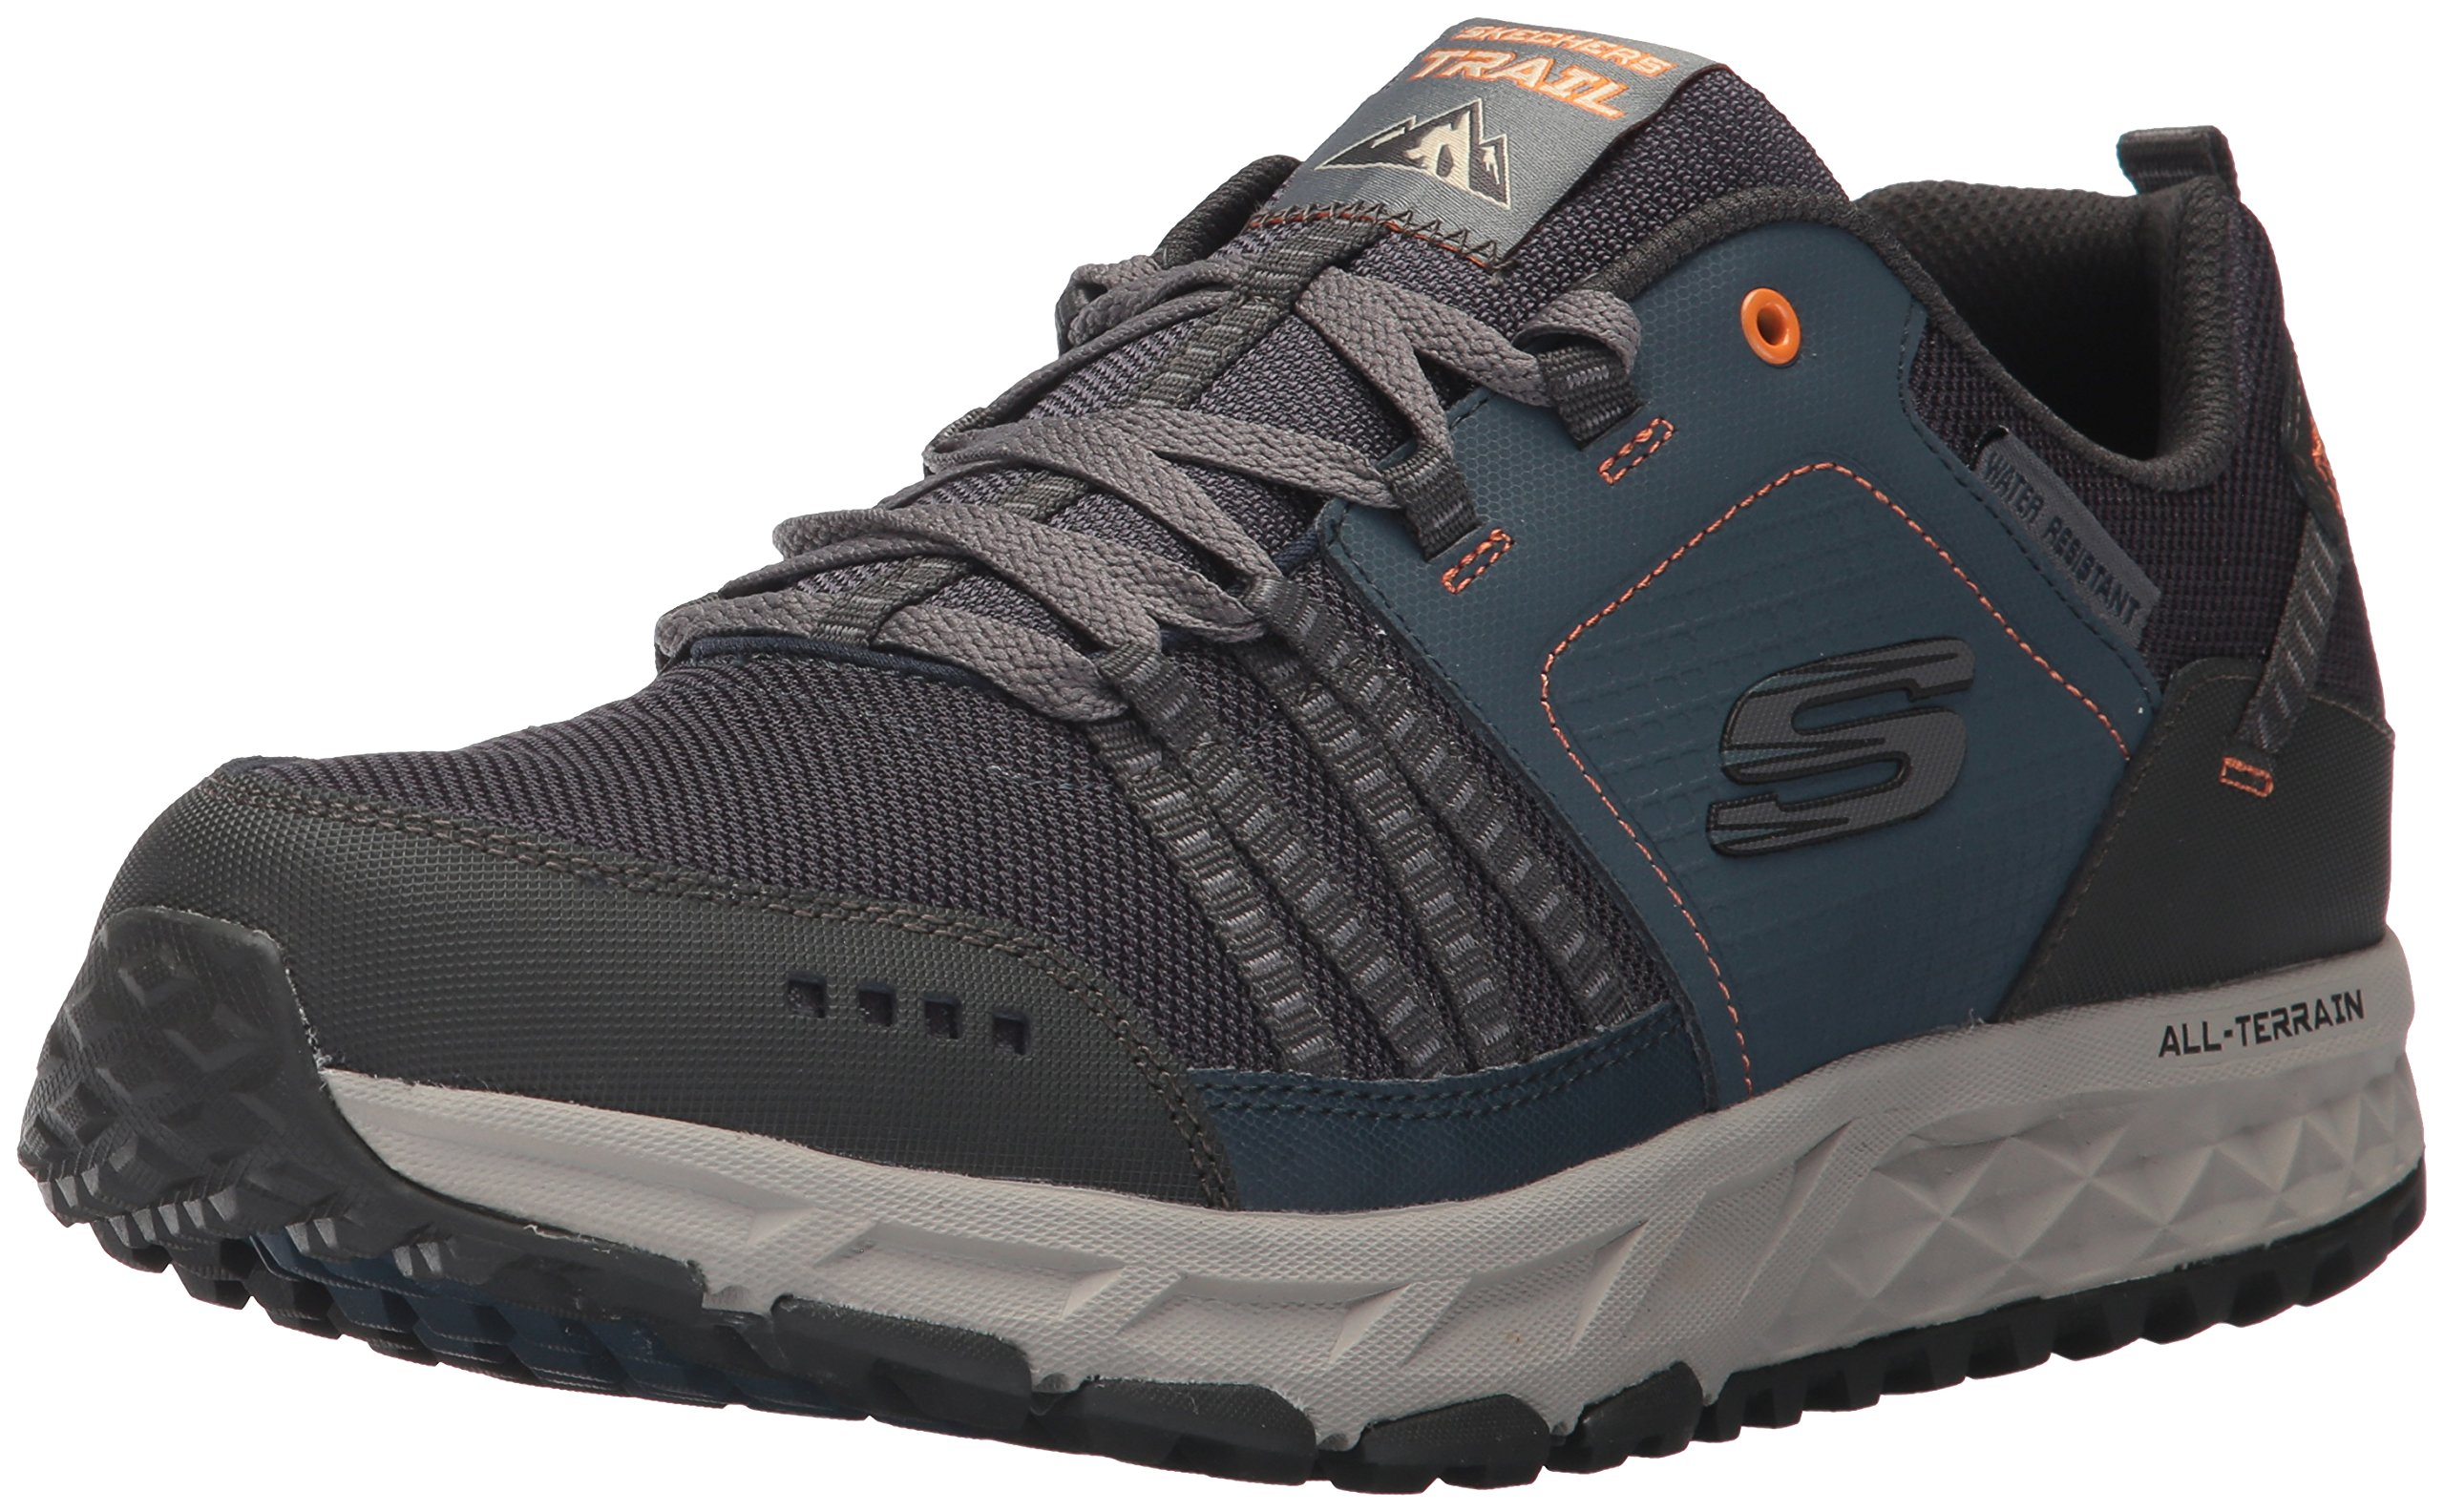 Running Escape PlanChaussures HommeBleunavy orange44 De Skechers Eu MUqSzGLVp